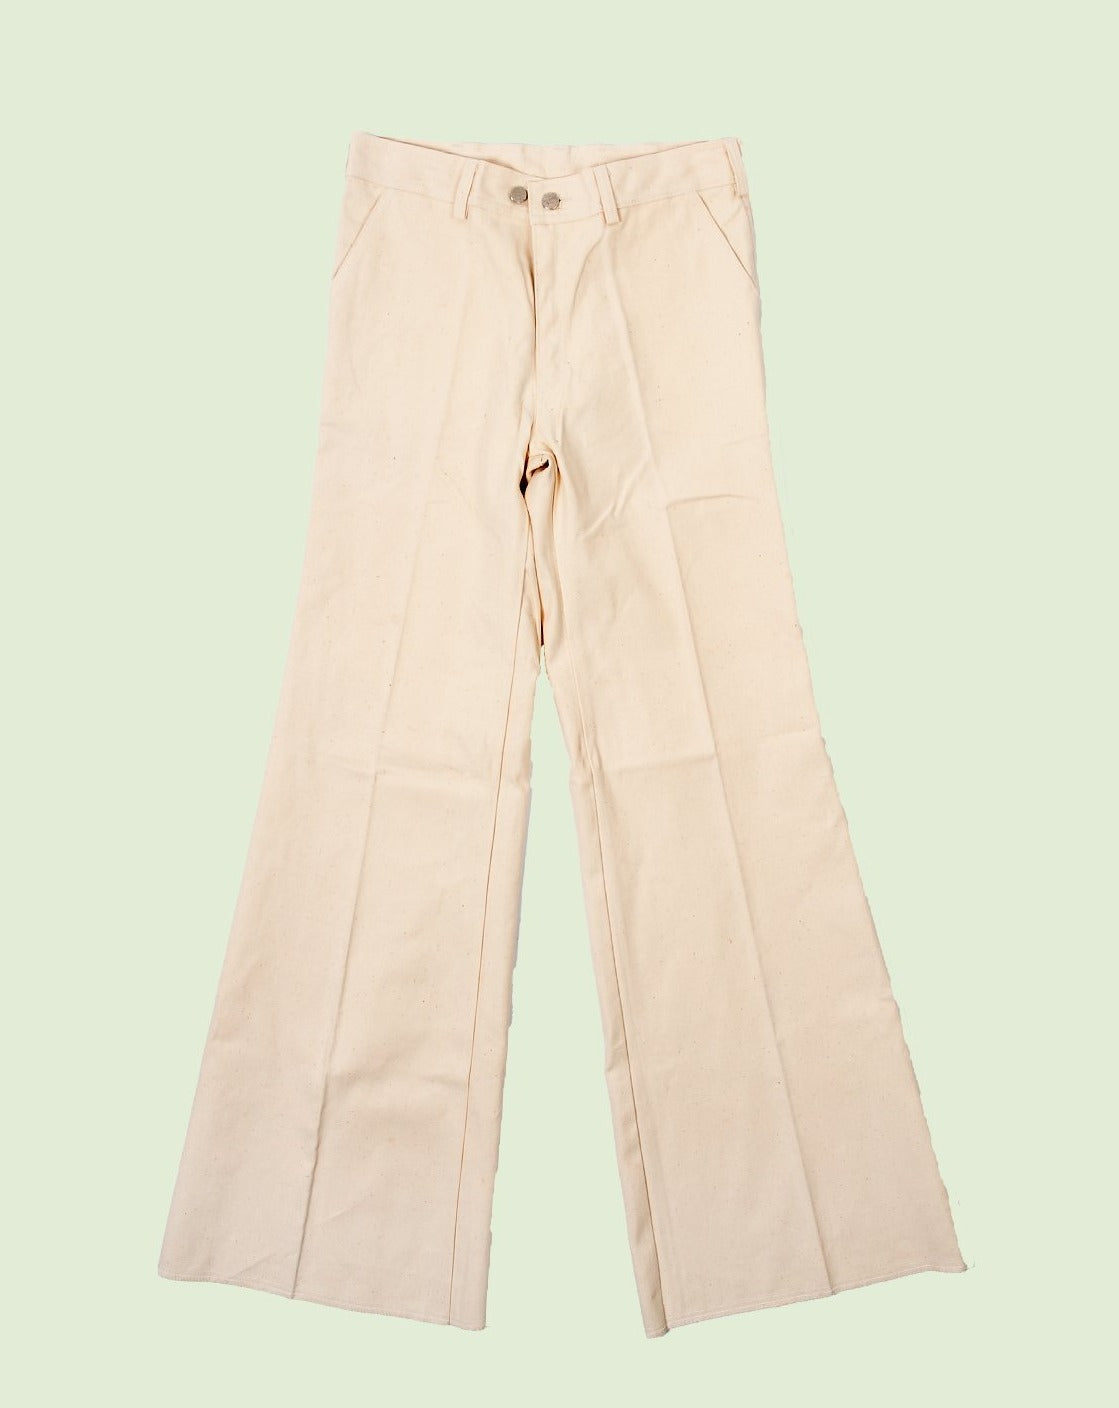 Cotton Flare Pants N.O.S.